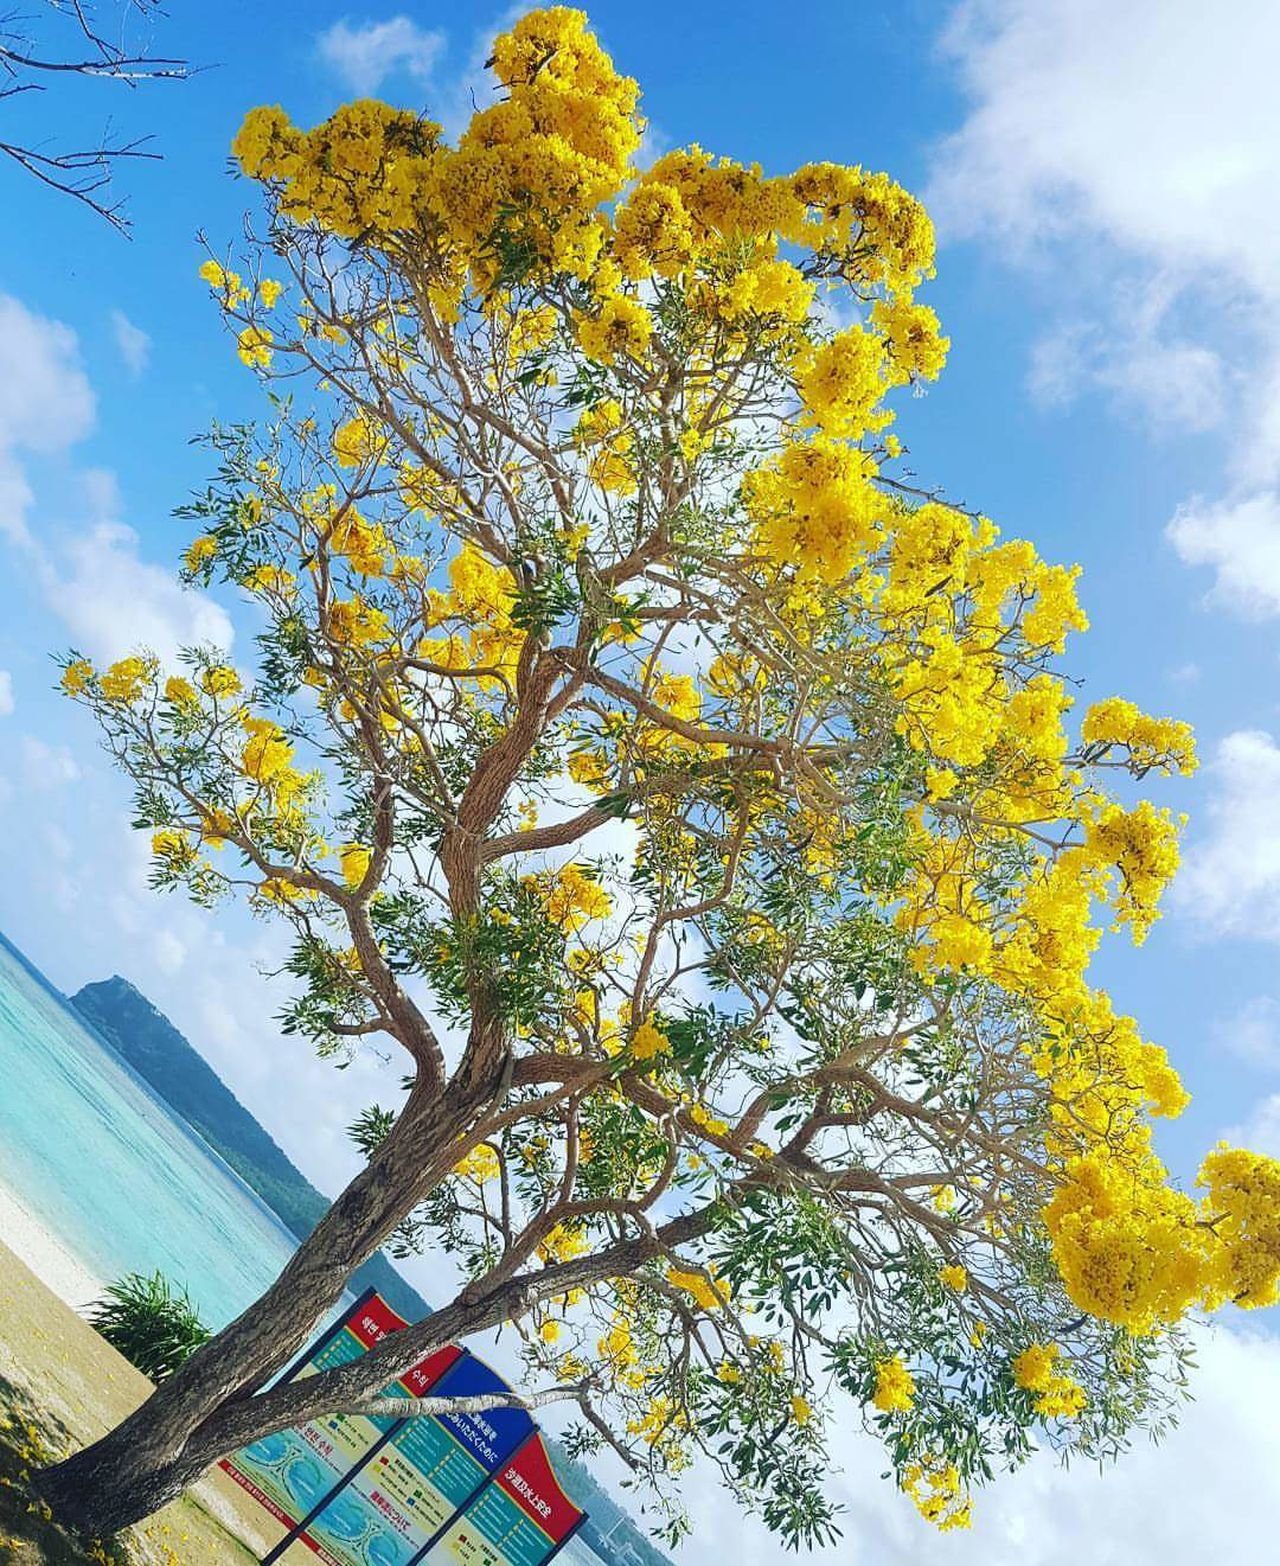 Yellow Flower Tree Outdoors Beach